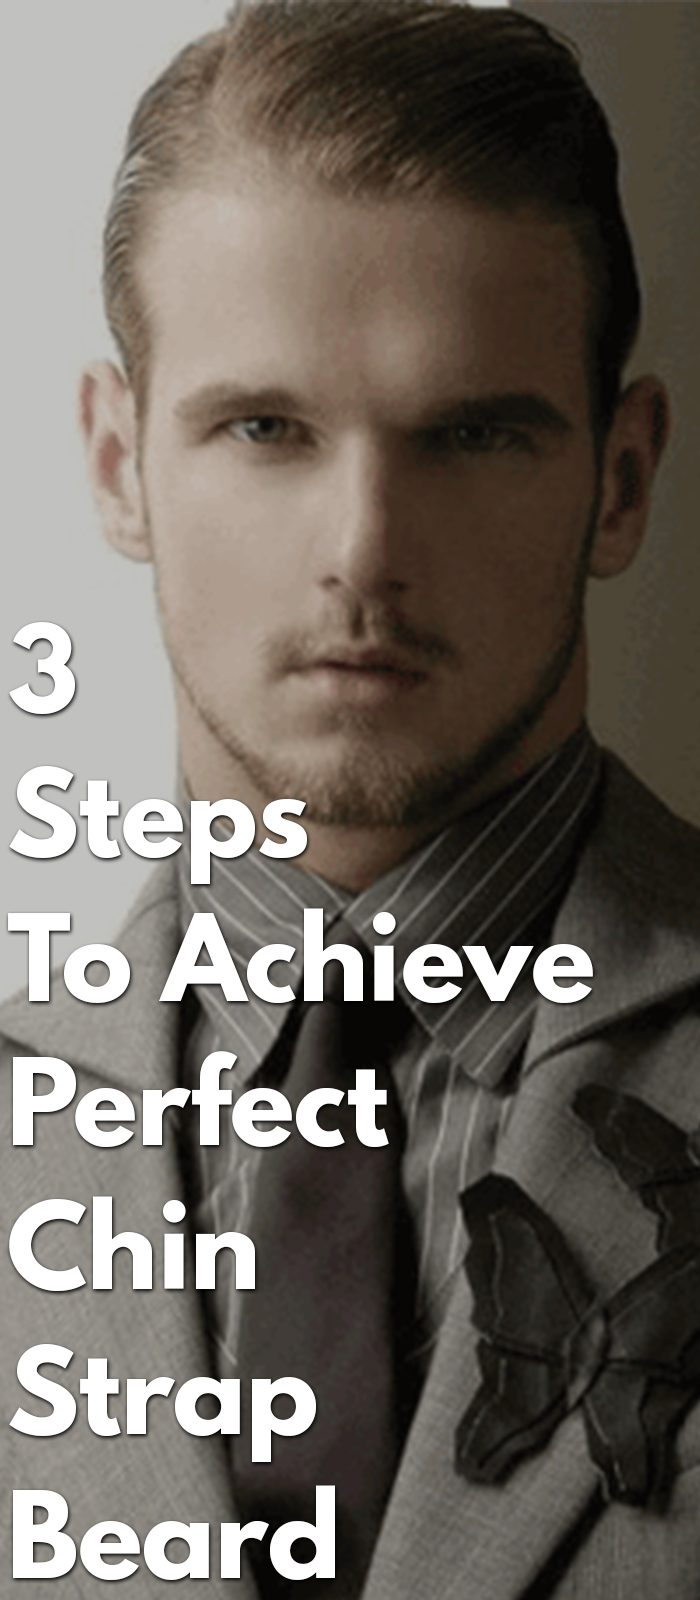 3-Steps-To-Achieve-Perfect-Chin-Strap-Beard.